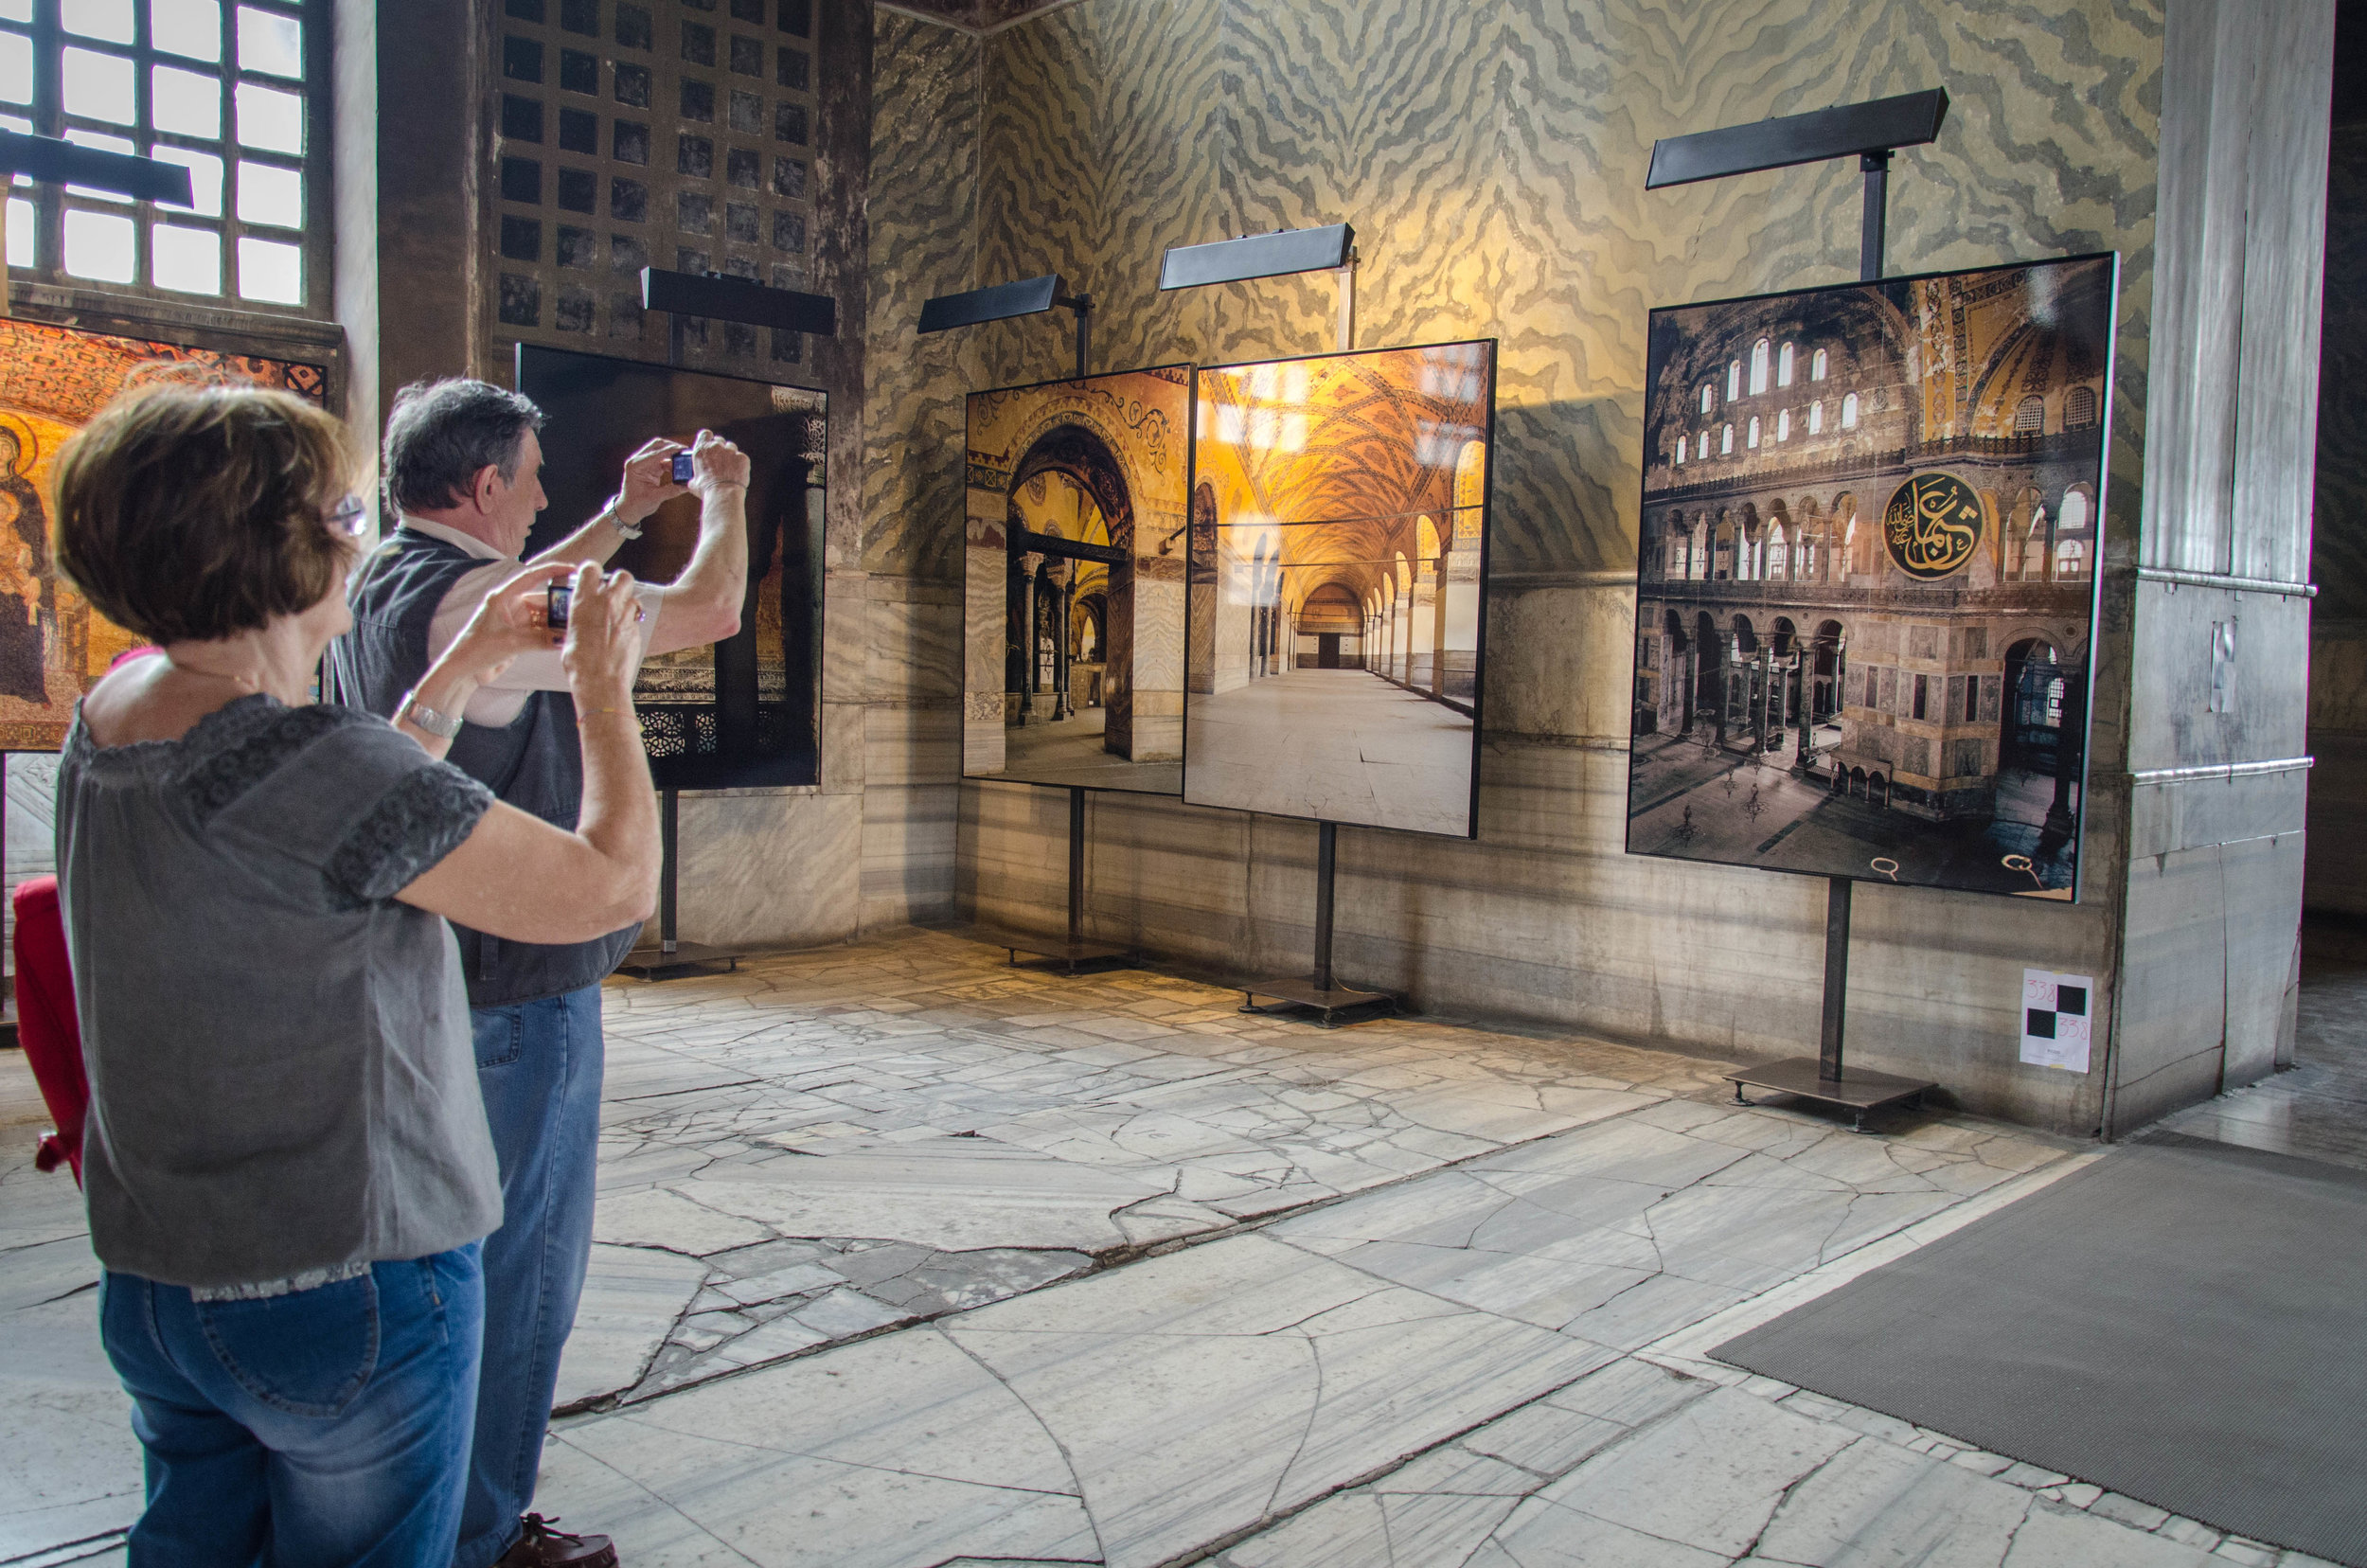 A photograph of people taking a photograph of a photograph of the Hagia Sophia in the Hagia Sophia. Istanbul, Turkey. Shot on DSLR (Nikon D7000).